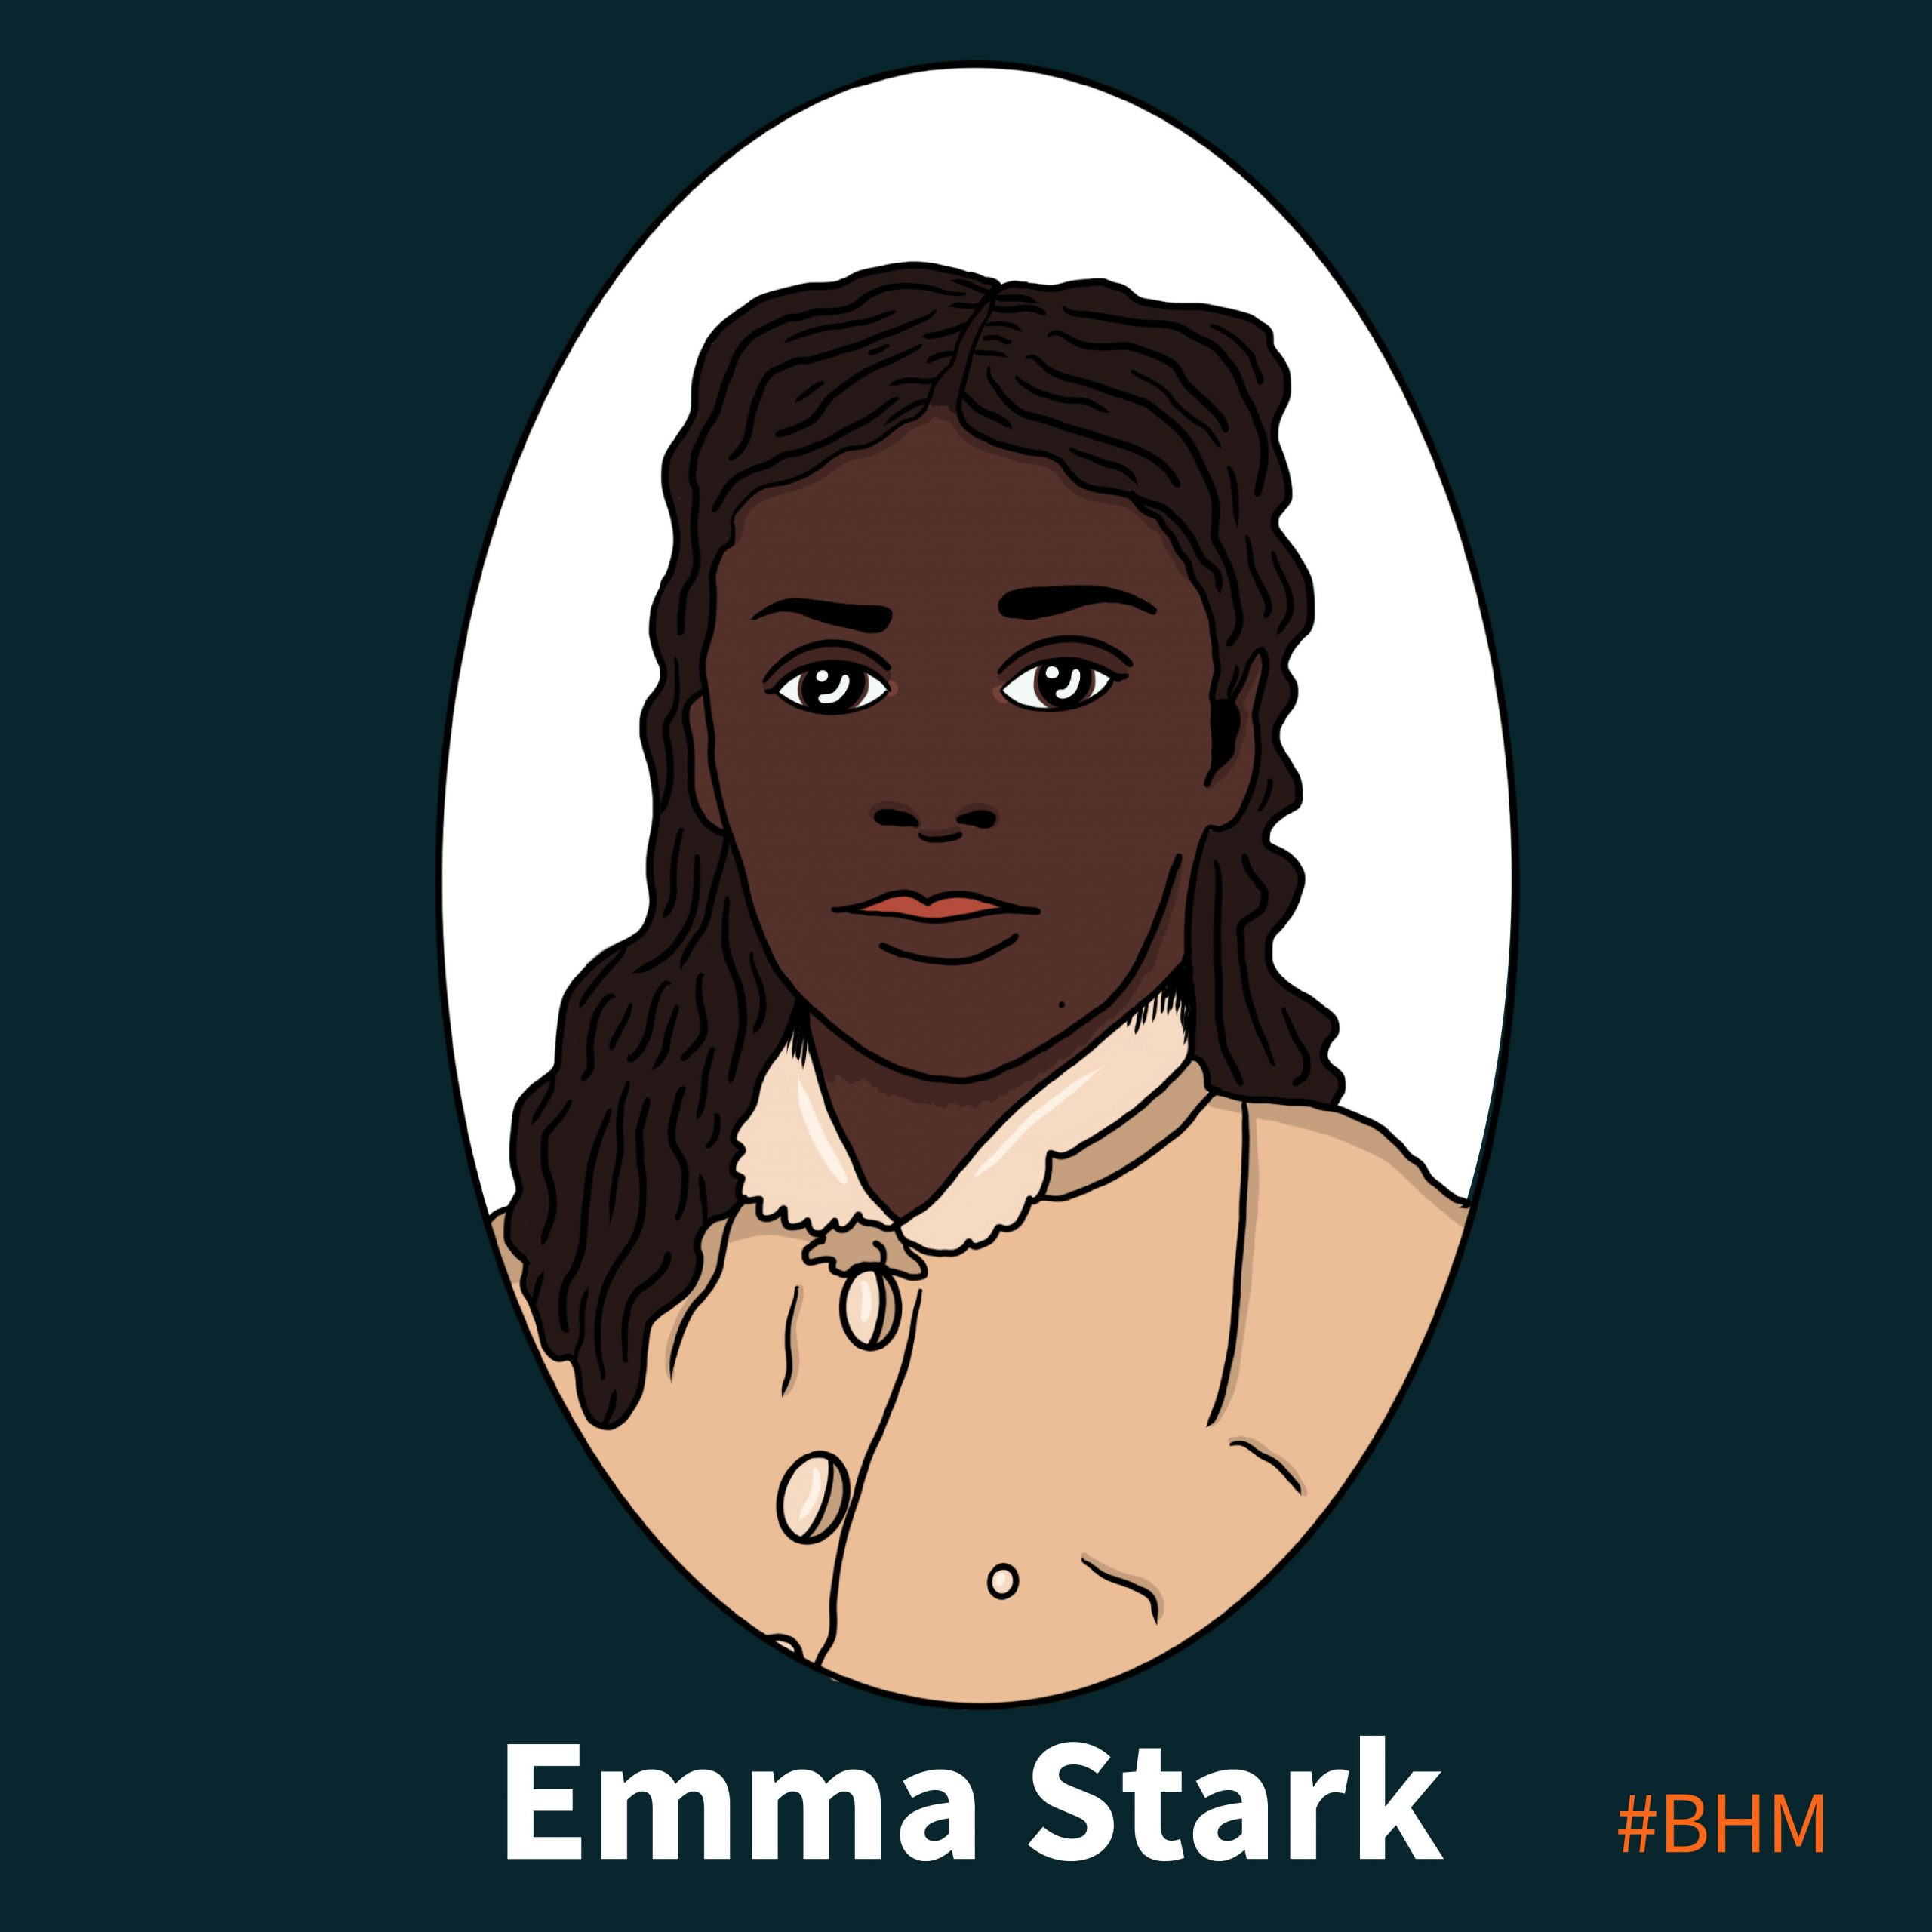 Illustration of Emma Stark, with the text #BHM